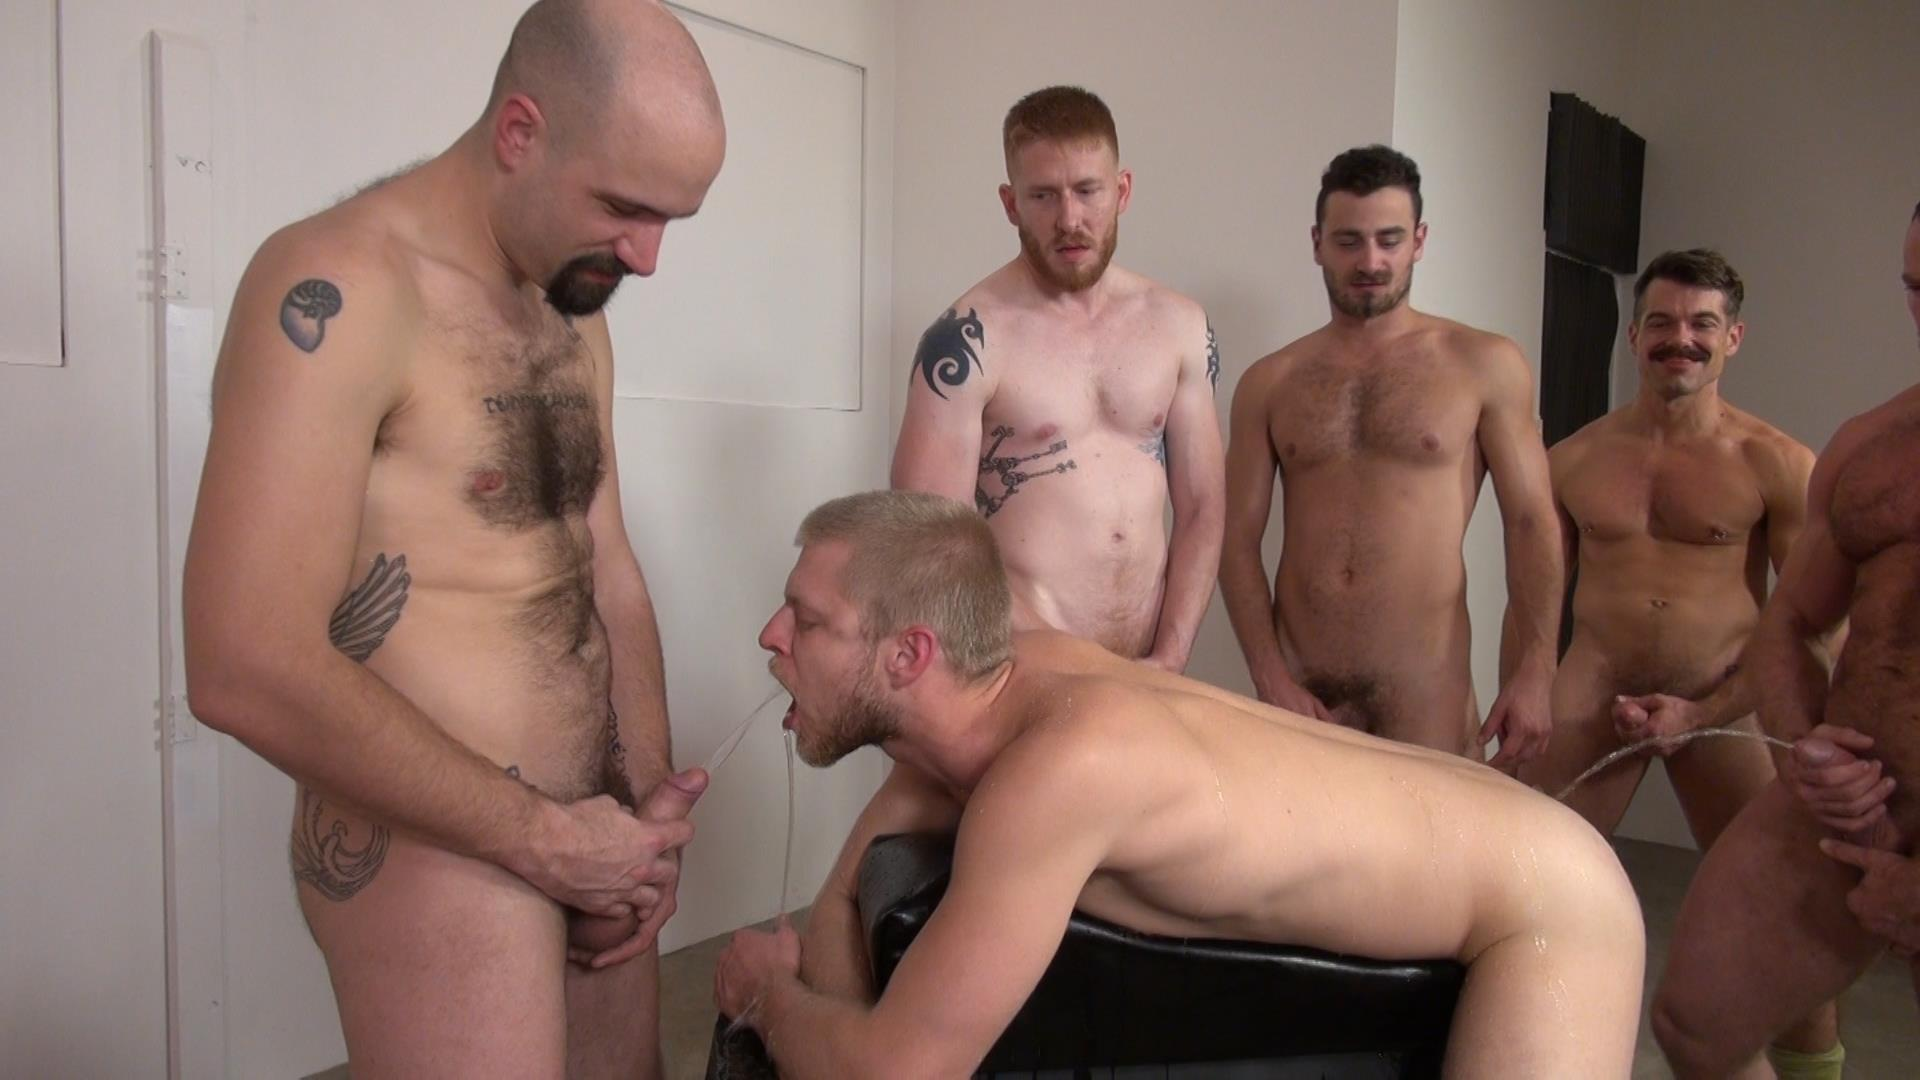 Raw and Rough Bareback Gay Sex Orgy Amateur Gay Porn 08 Six Hairy Hung Guys Pounding A Bottom At A Bareback Sex Party